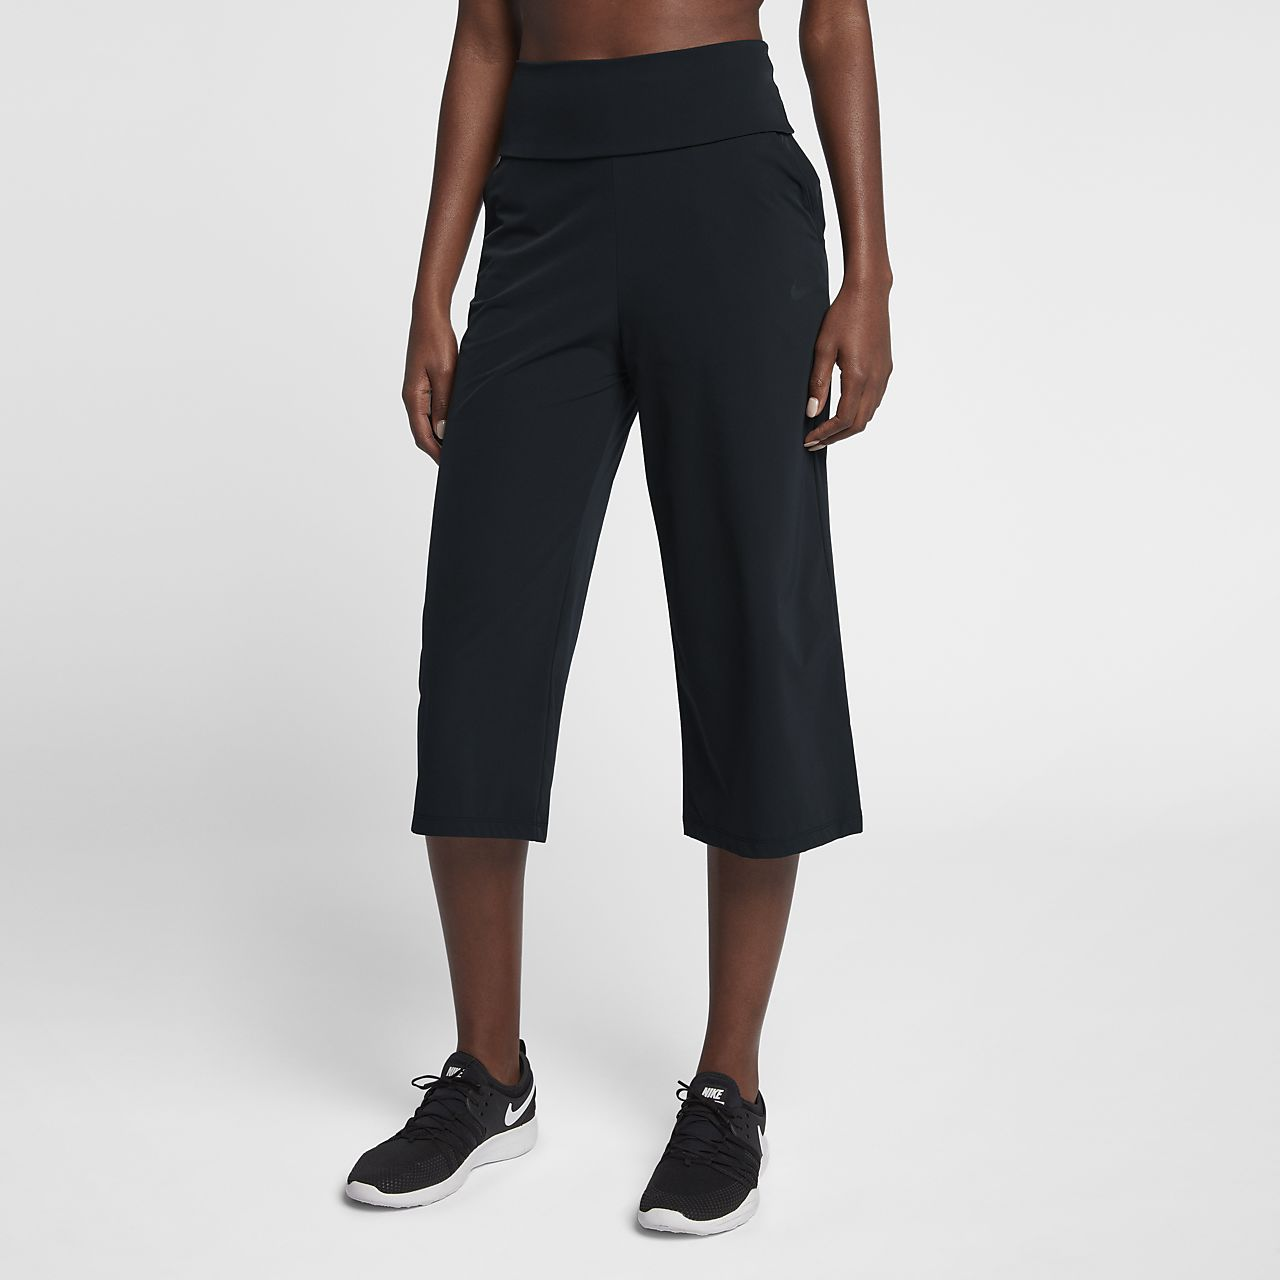 ... Nike Bliss Studio Women's High-Waisted Training Trousers